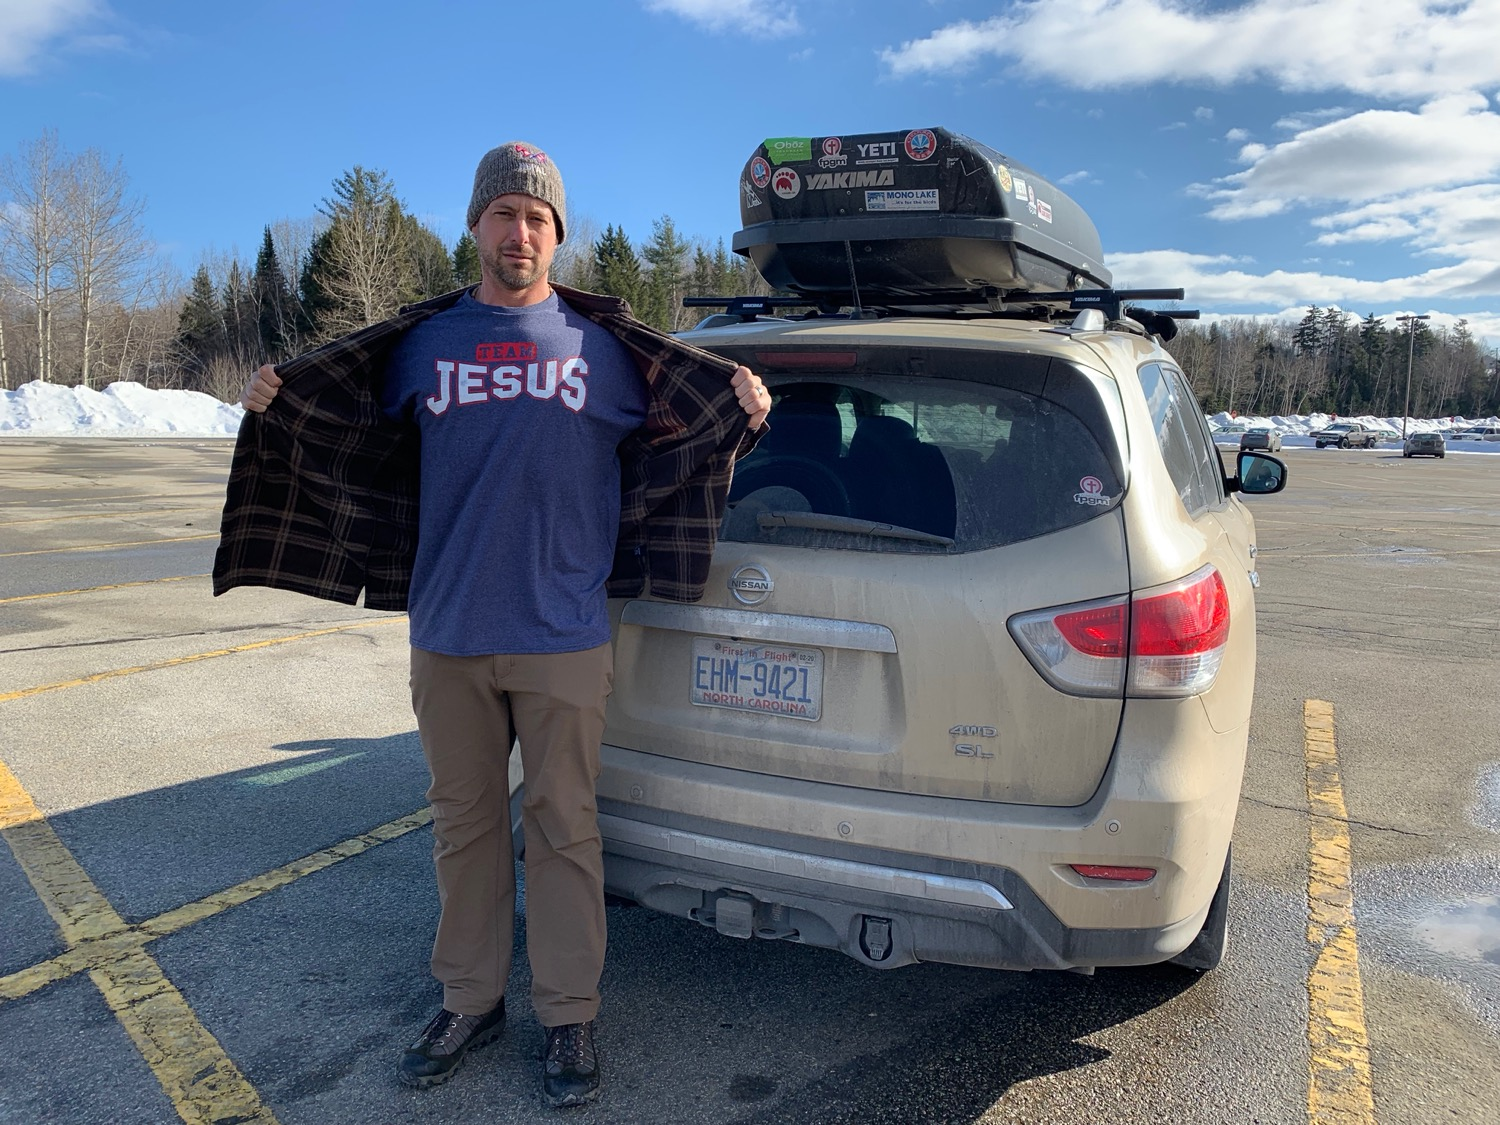 Much was unexpected on the road, including finding this sweet Team Jesus tee in a Vermont Walmart.